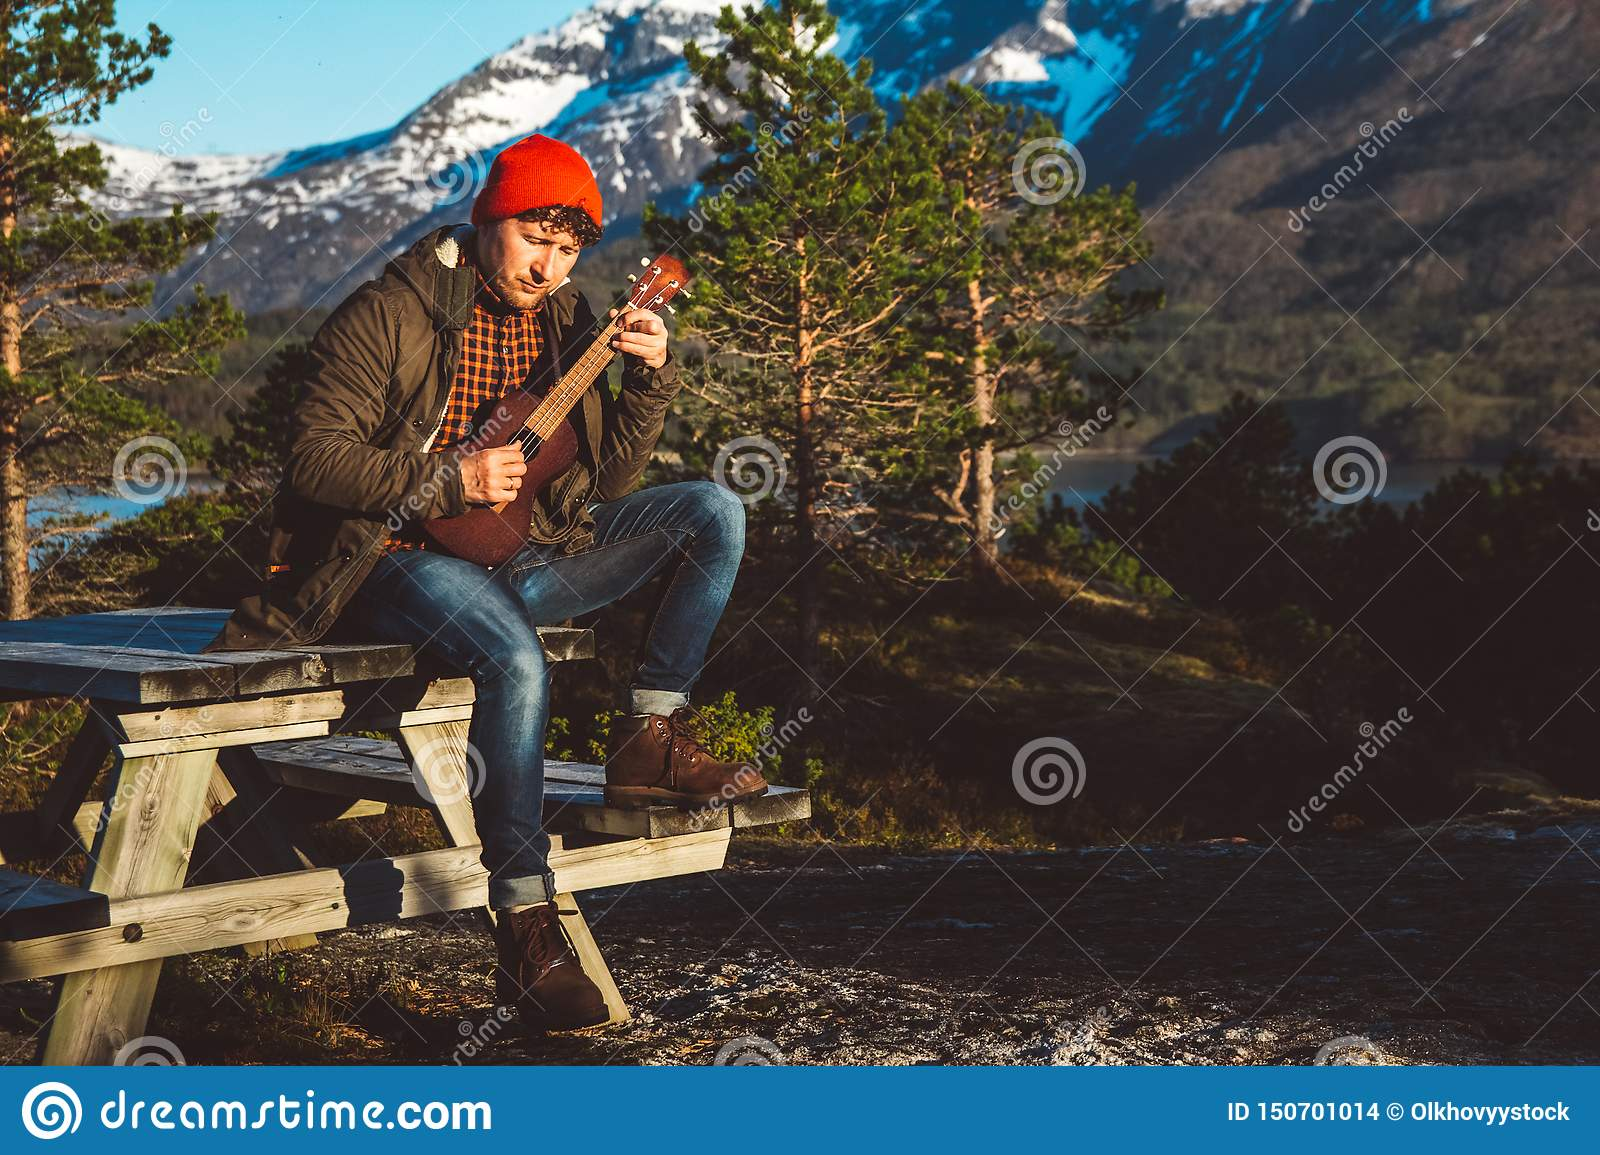 Guy playing guitar sitting on a wooden table against the background of mountains, forests and lakes, wear a shirt and a